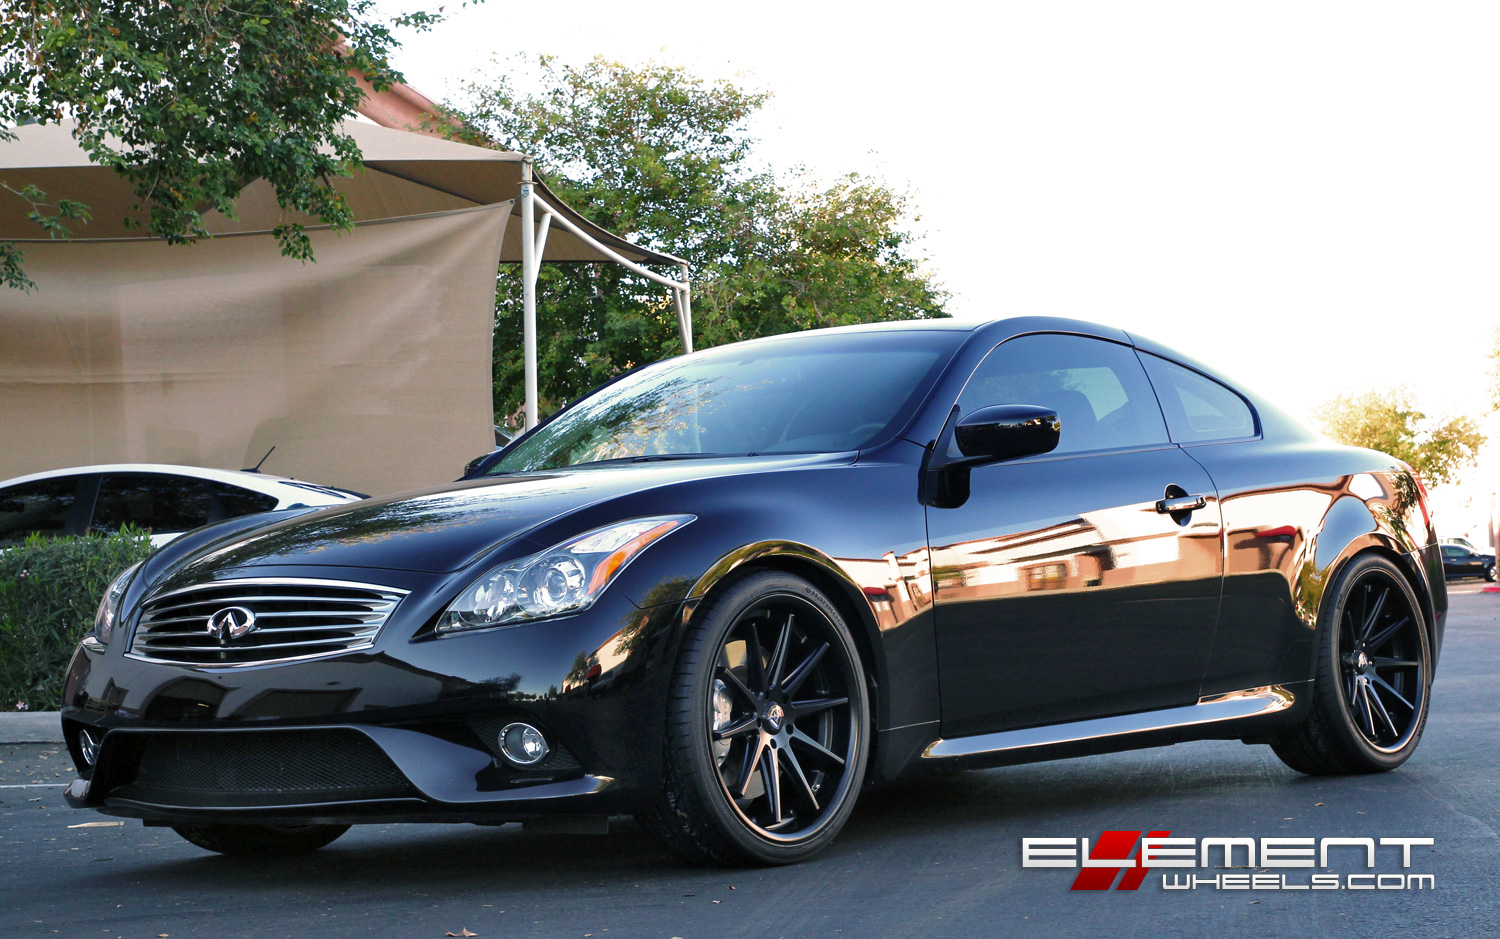 Staggered Concave Rohana Rc10 Matte Black On Infiniti G37s Coupe W Specs Element Wheels